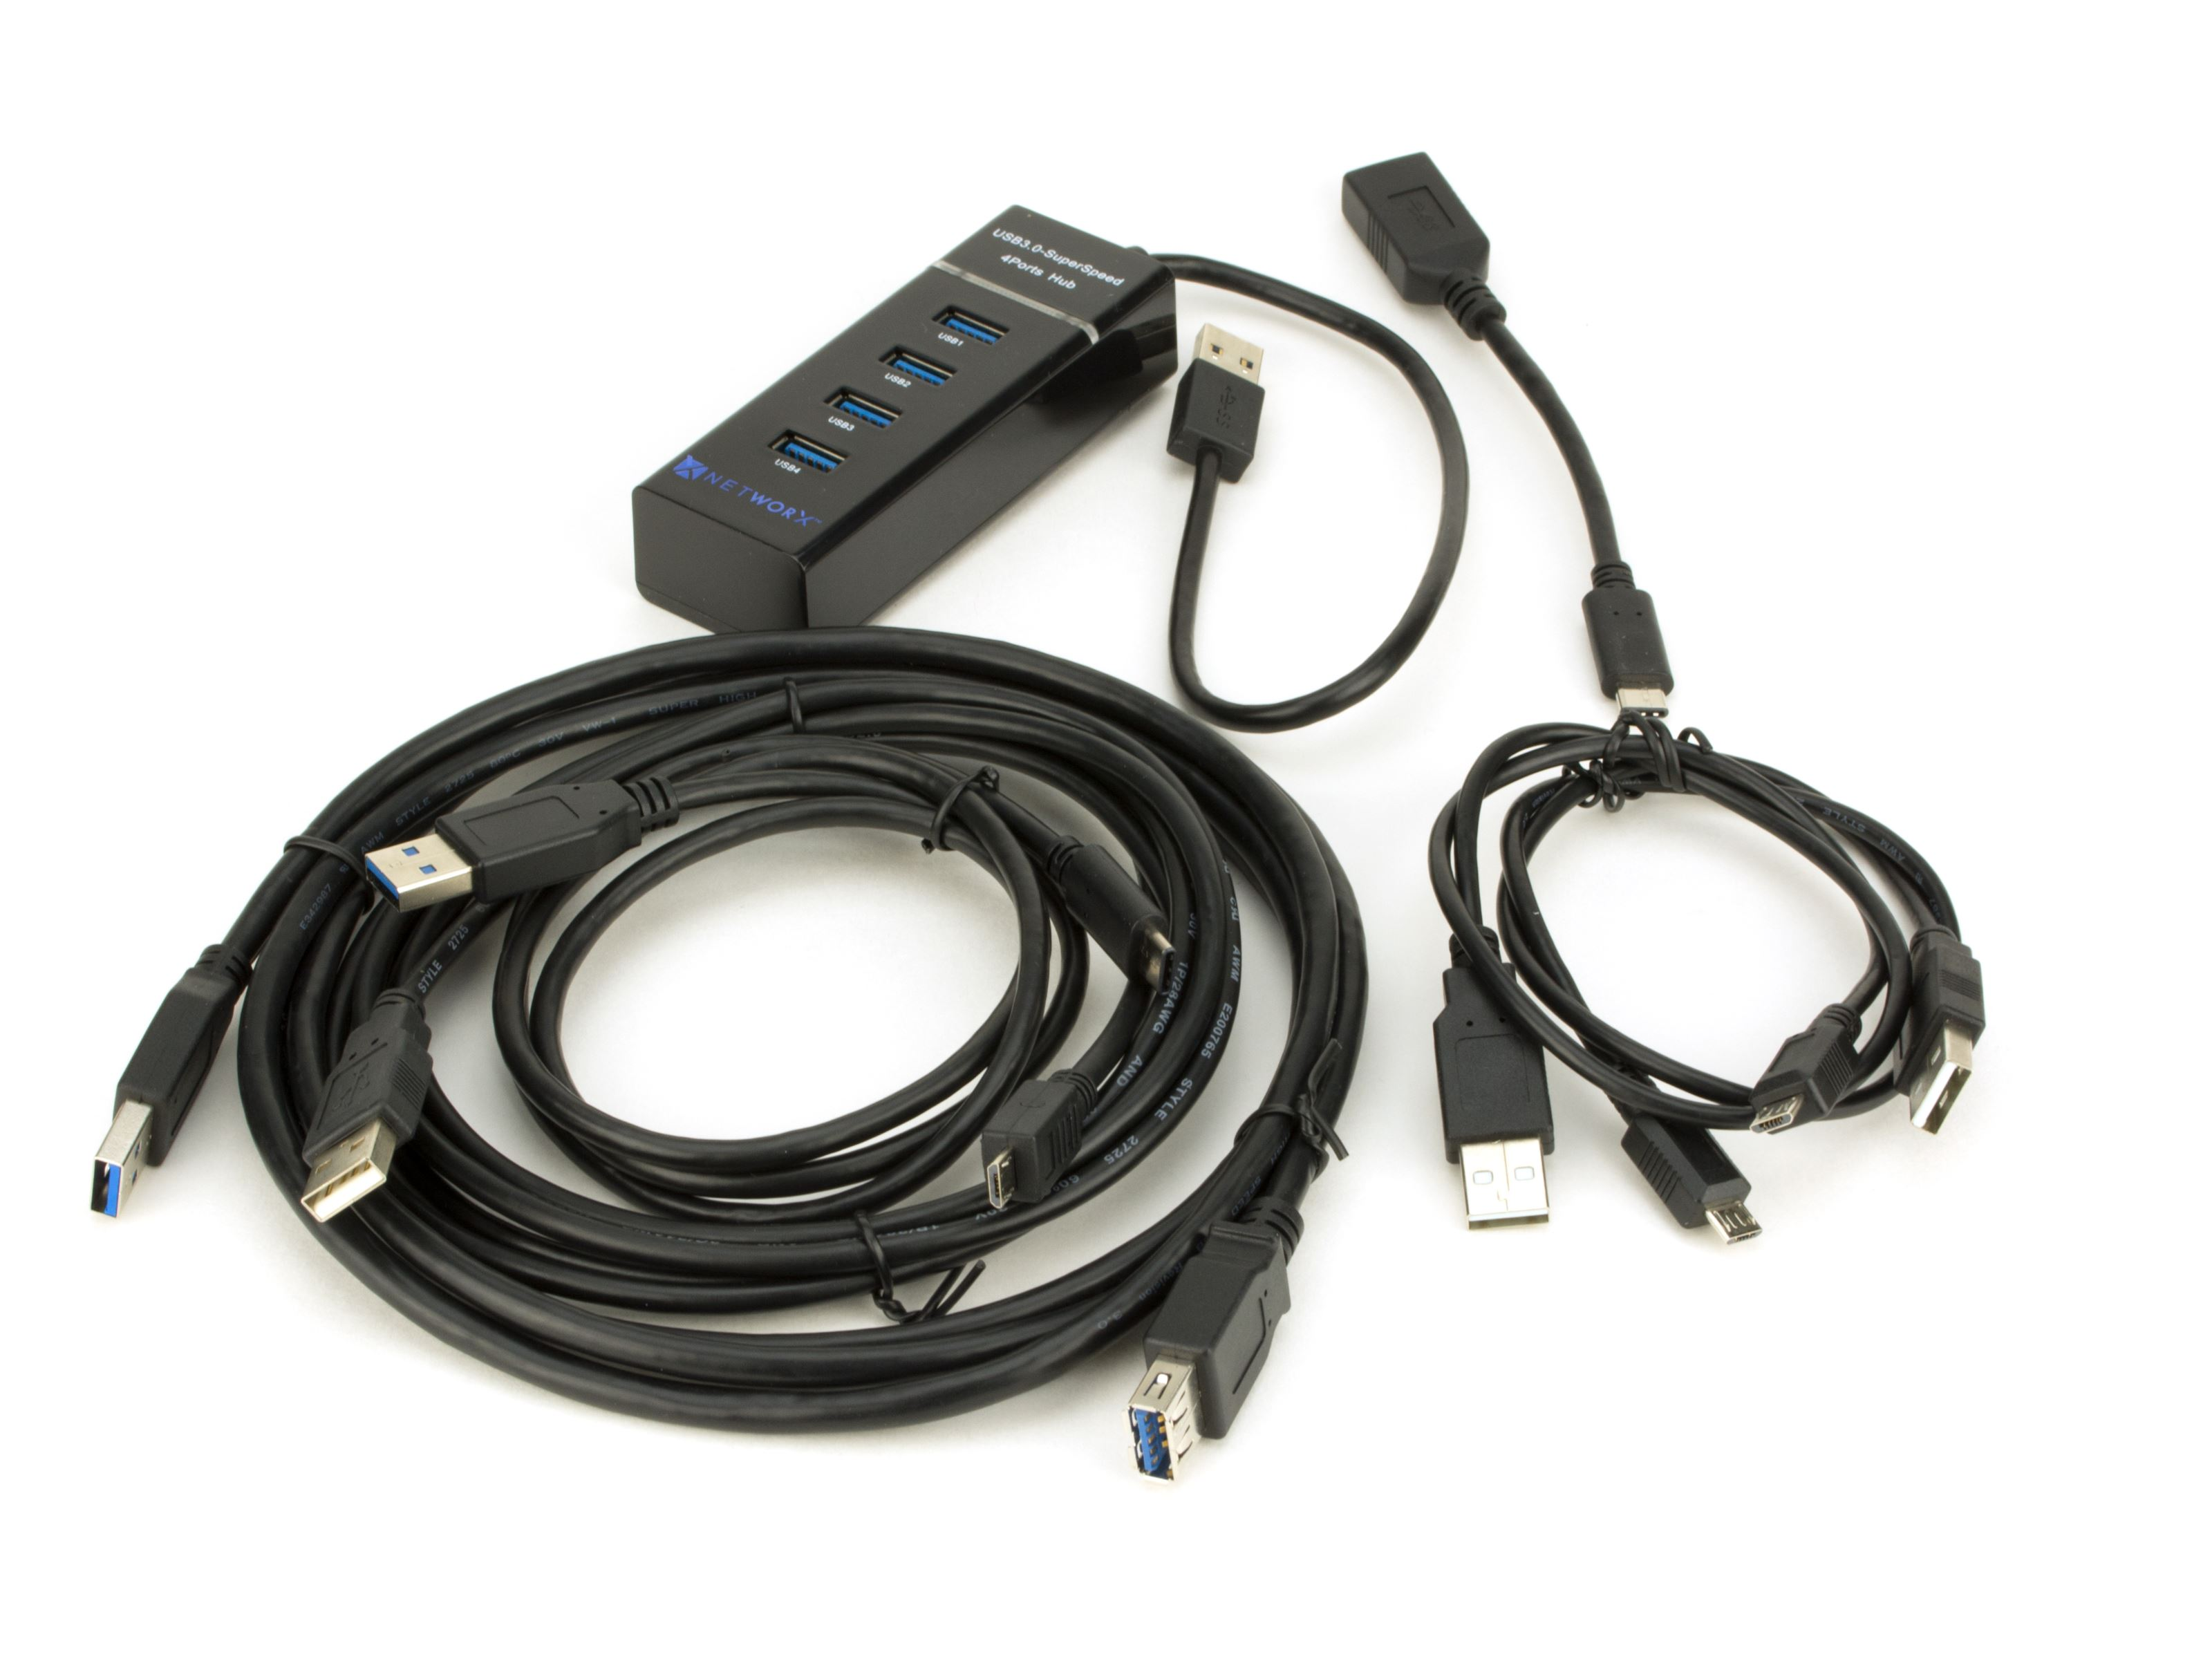 Kit - 4 Port USB 3.0 Hub w Extra Cables   Computer Cable Store